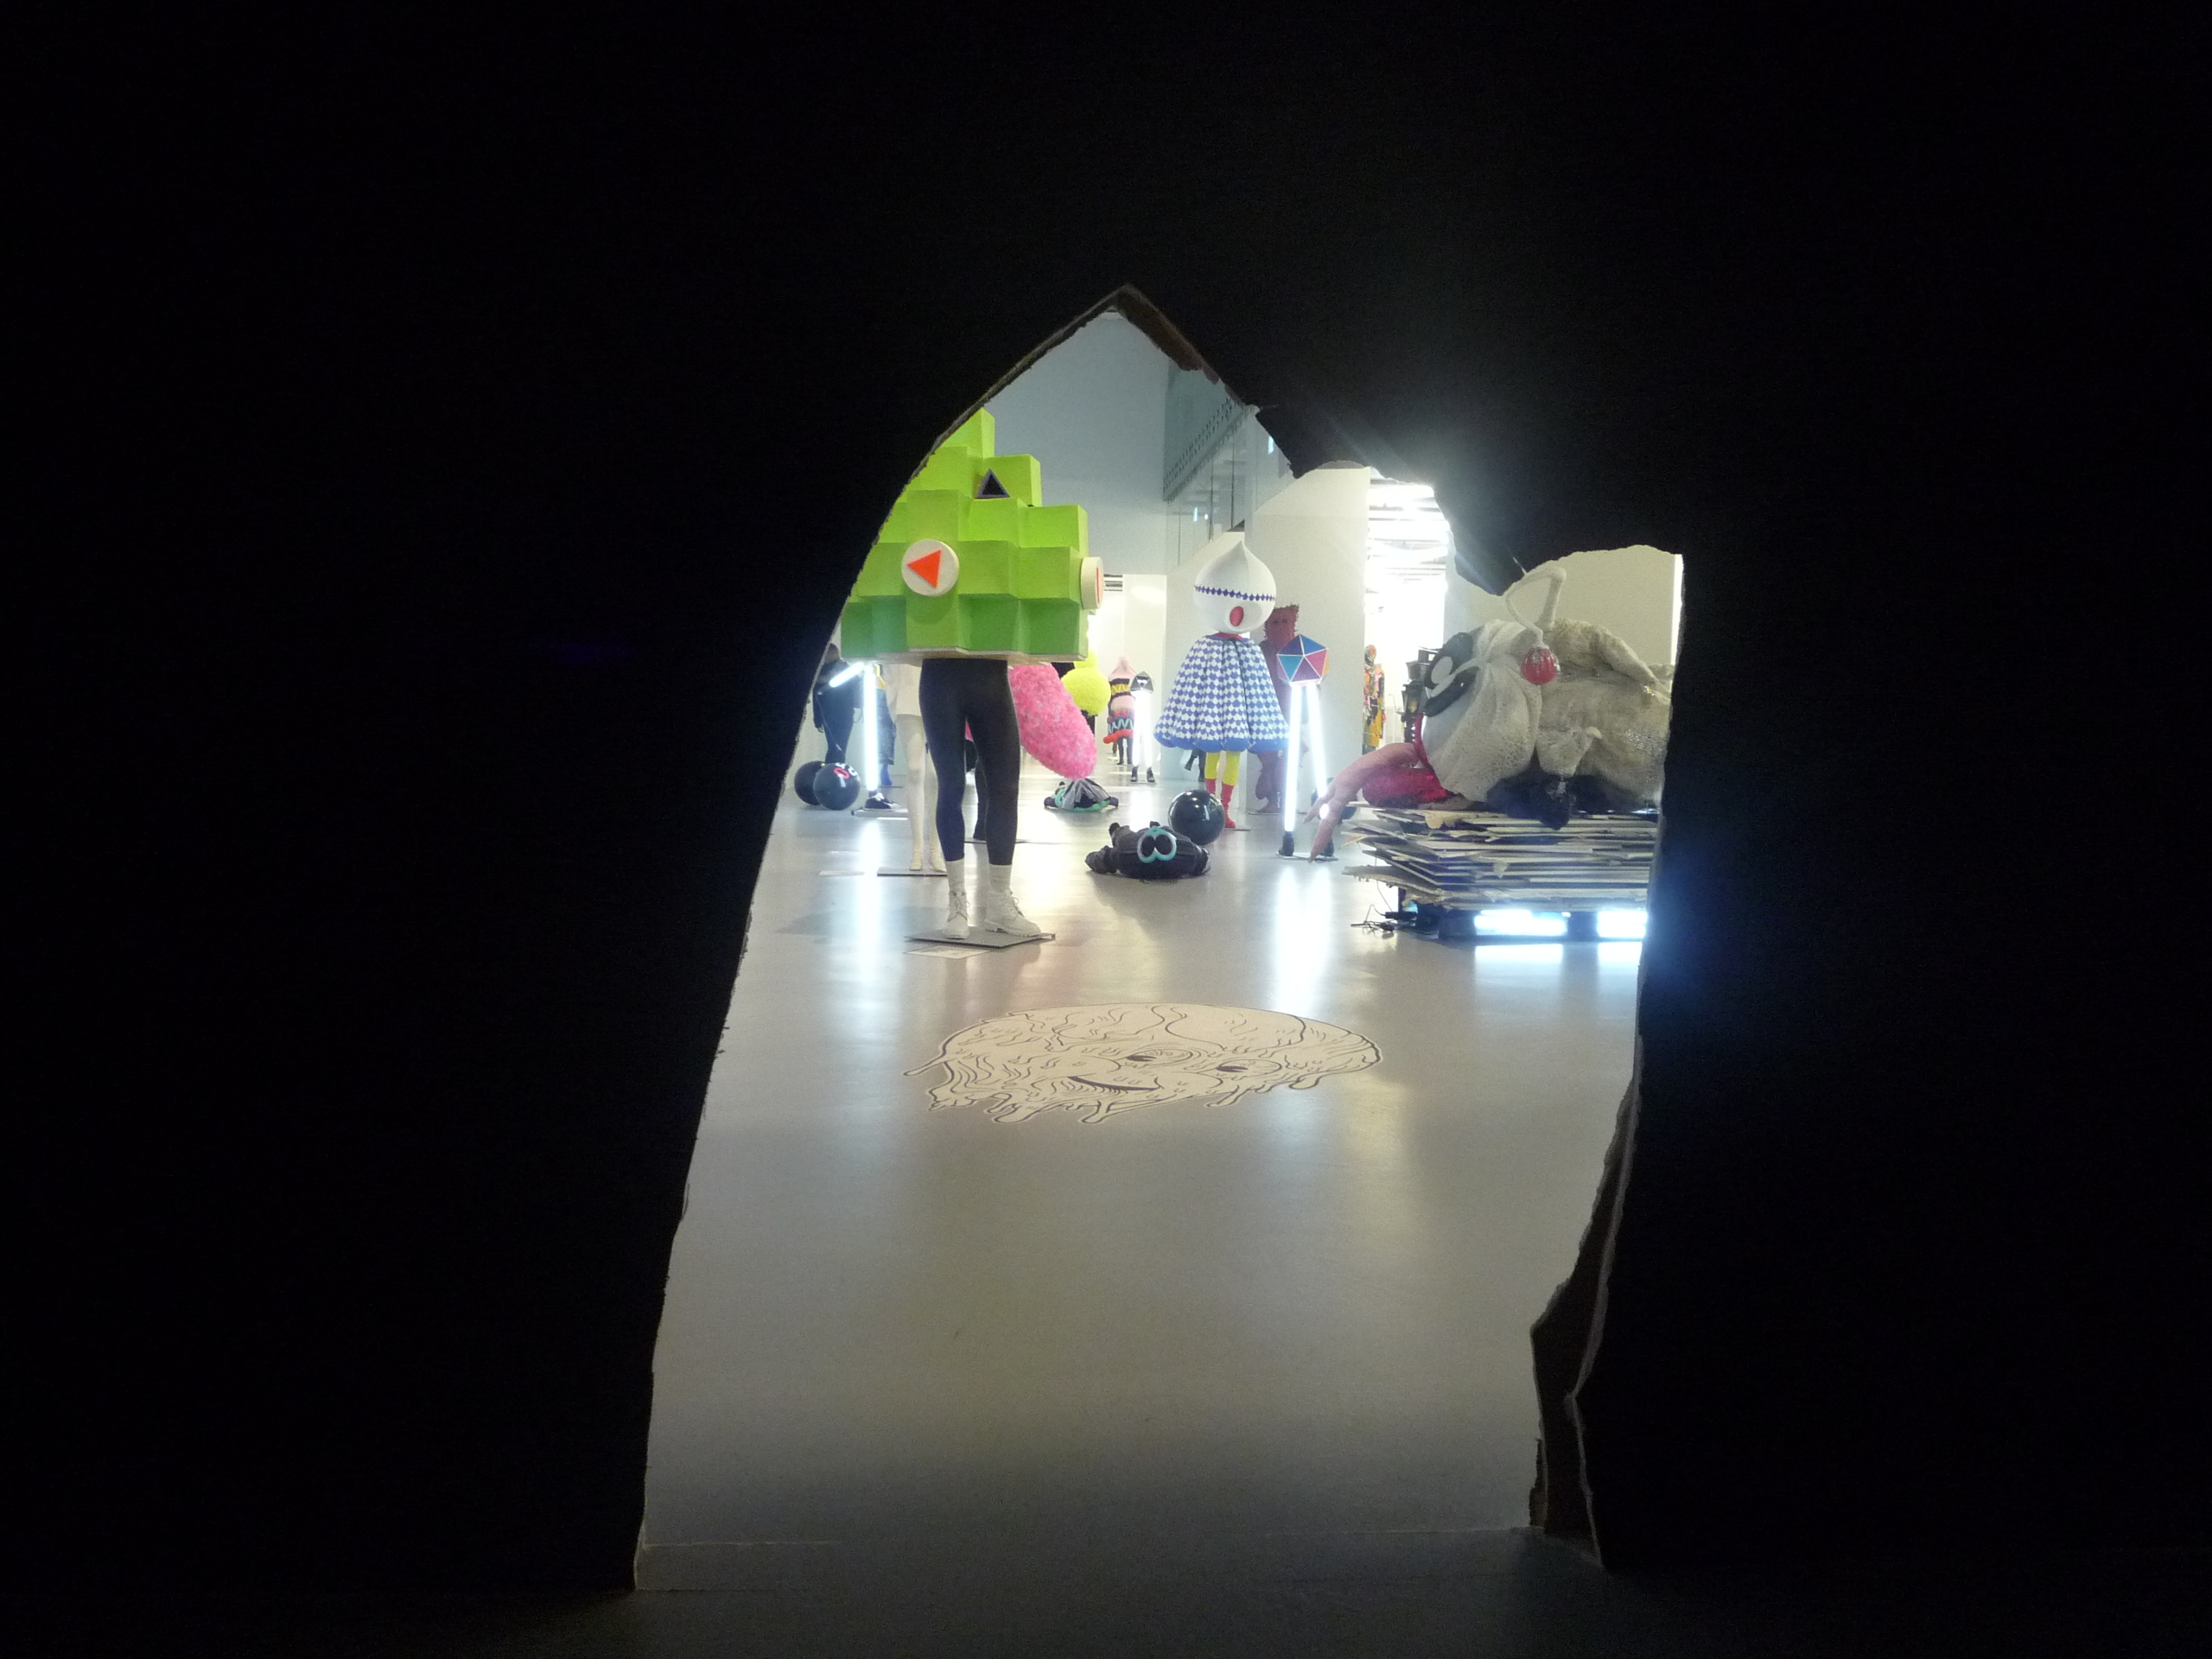 View of the main display through a hole created in a passageway by a furious monster